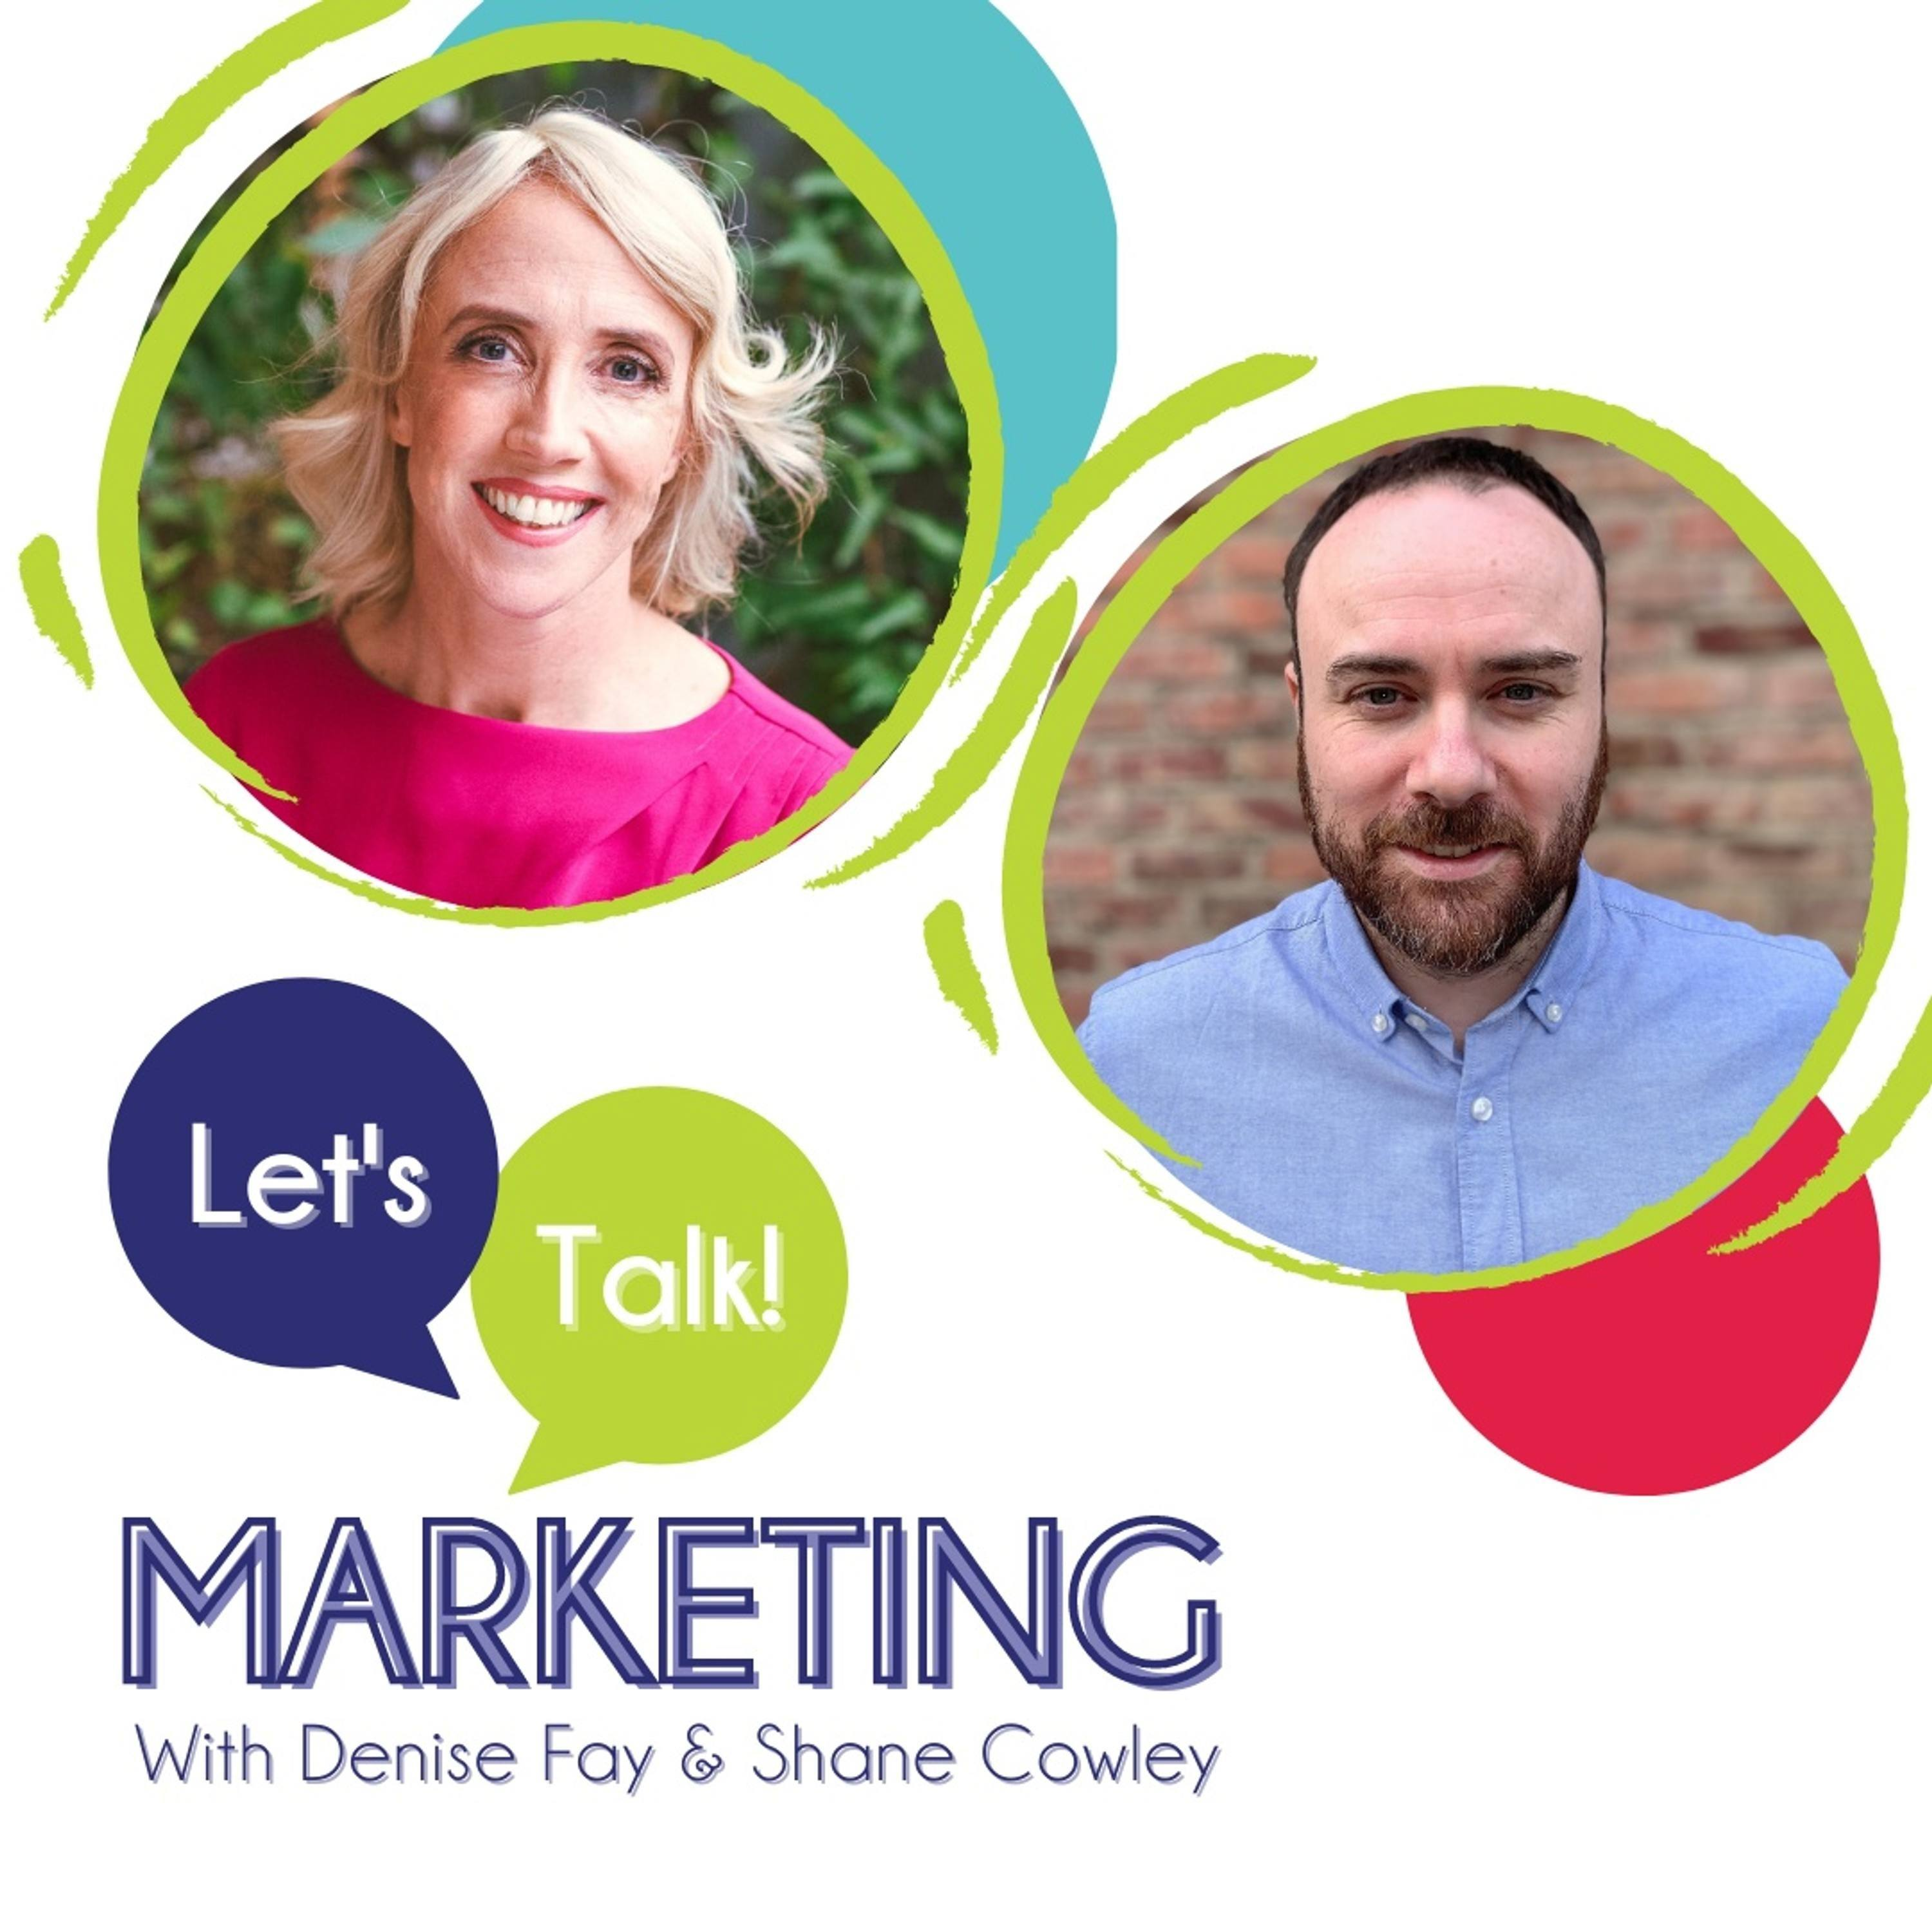 Lets Talk Marketing with Denise Fay and Shane Cowley